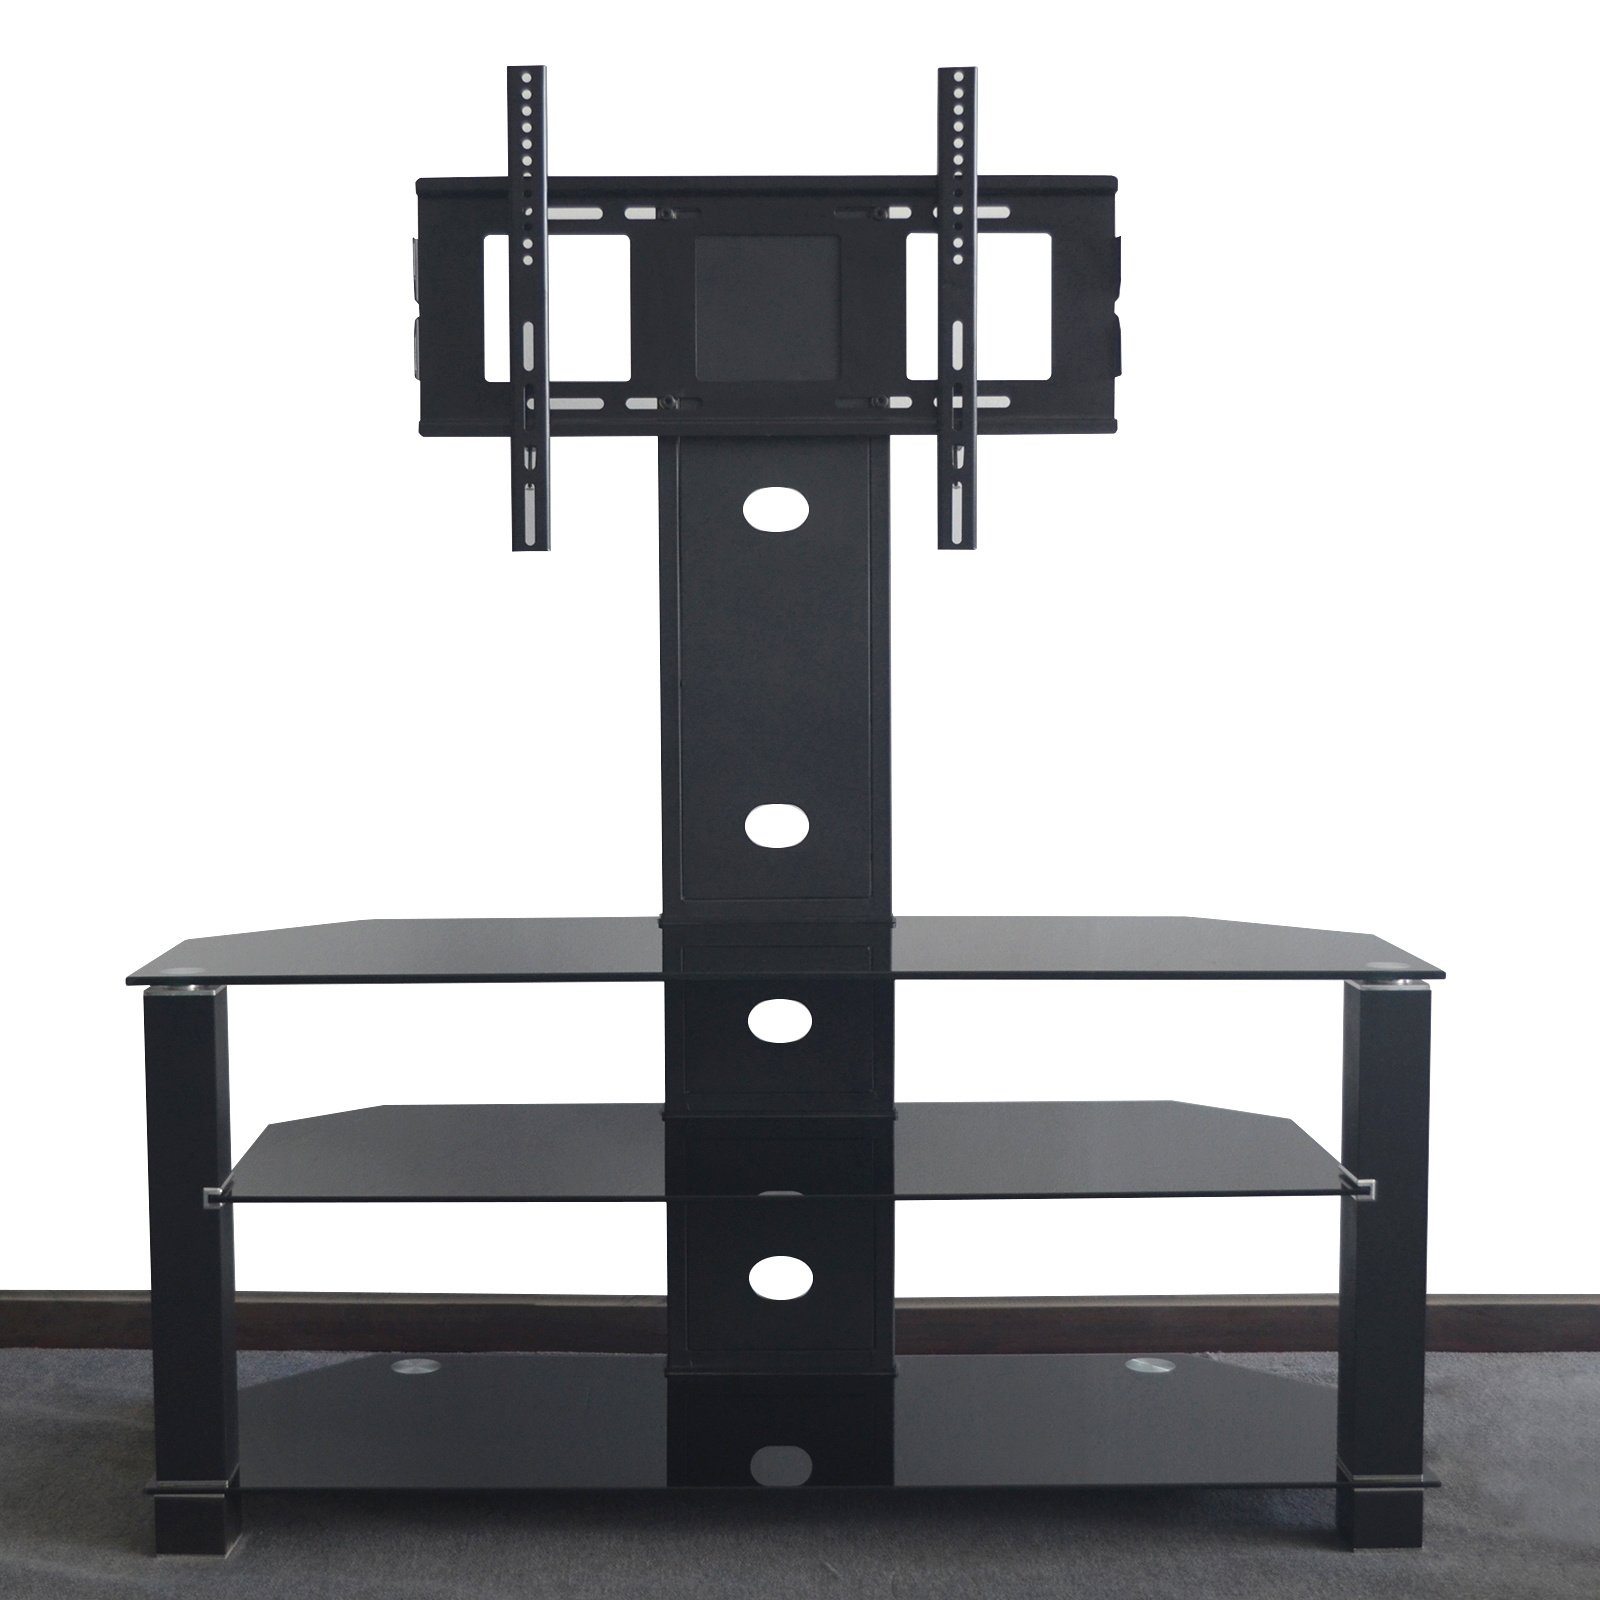 Fashionable Cantilever Tv Stands Pertaining To Cantilever Glass Tv Stand With Swivel Bracket For 32 To 55 Inches Tv (View 12 of 20)